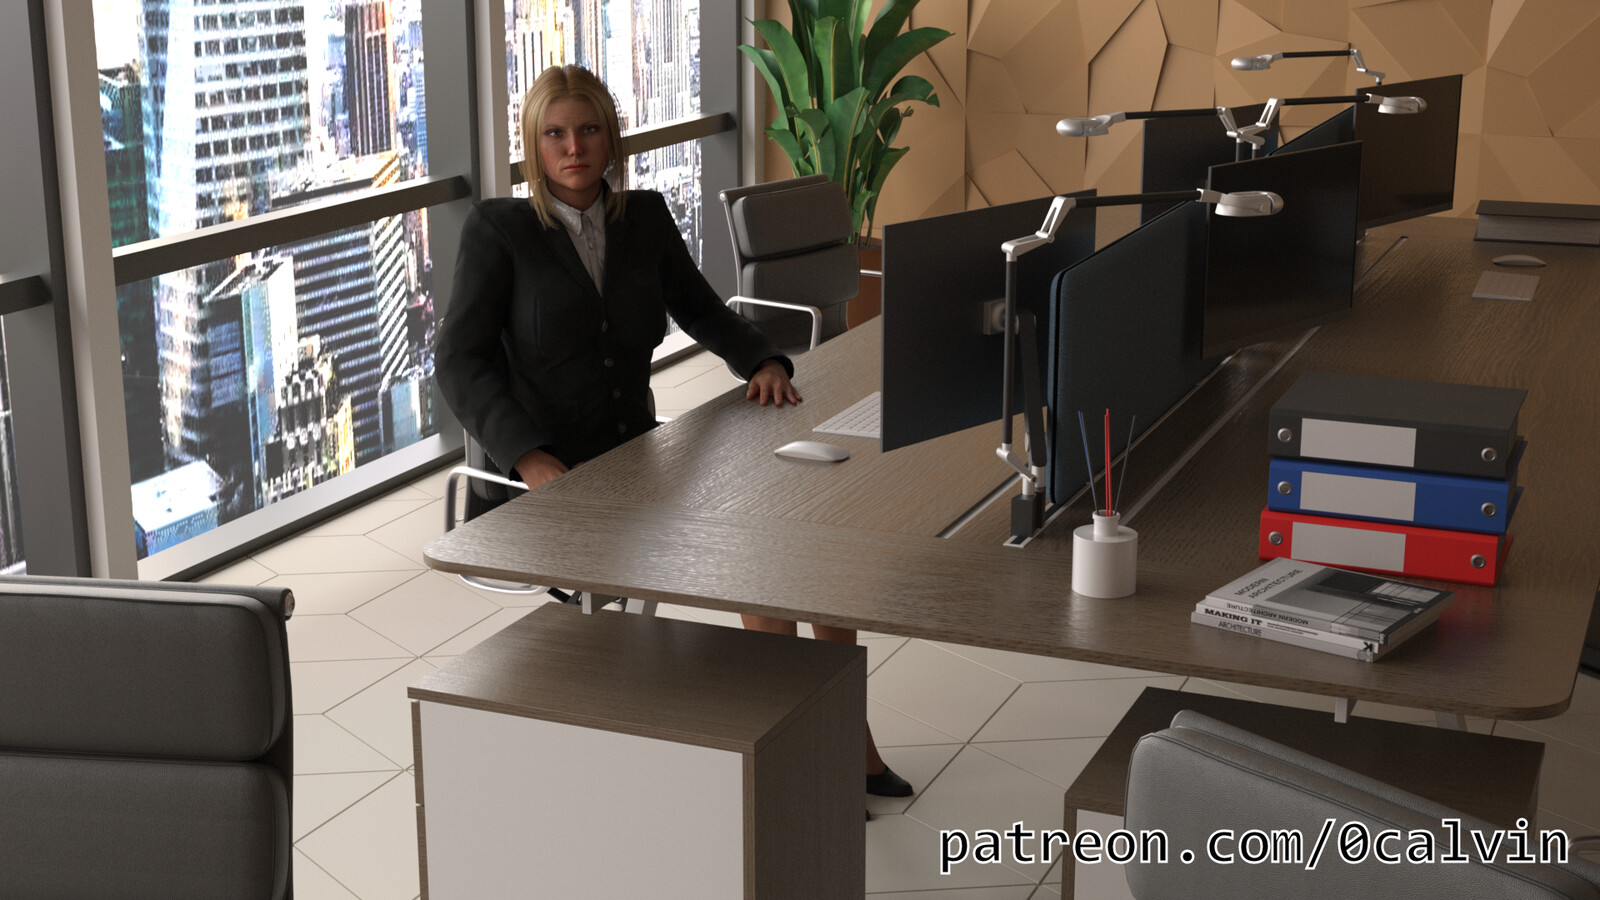 Miss Management in her Office